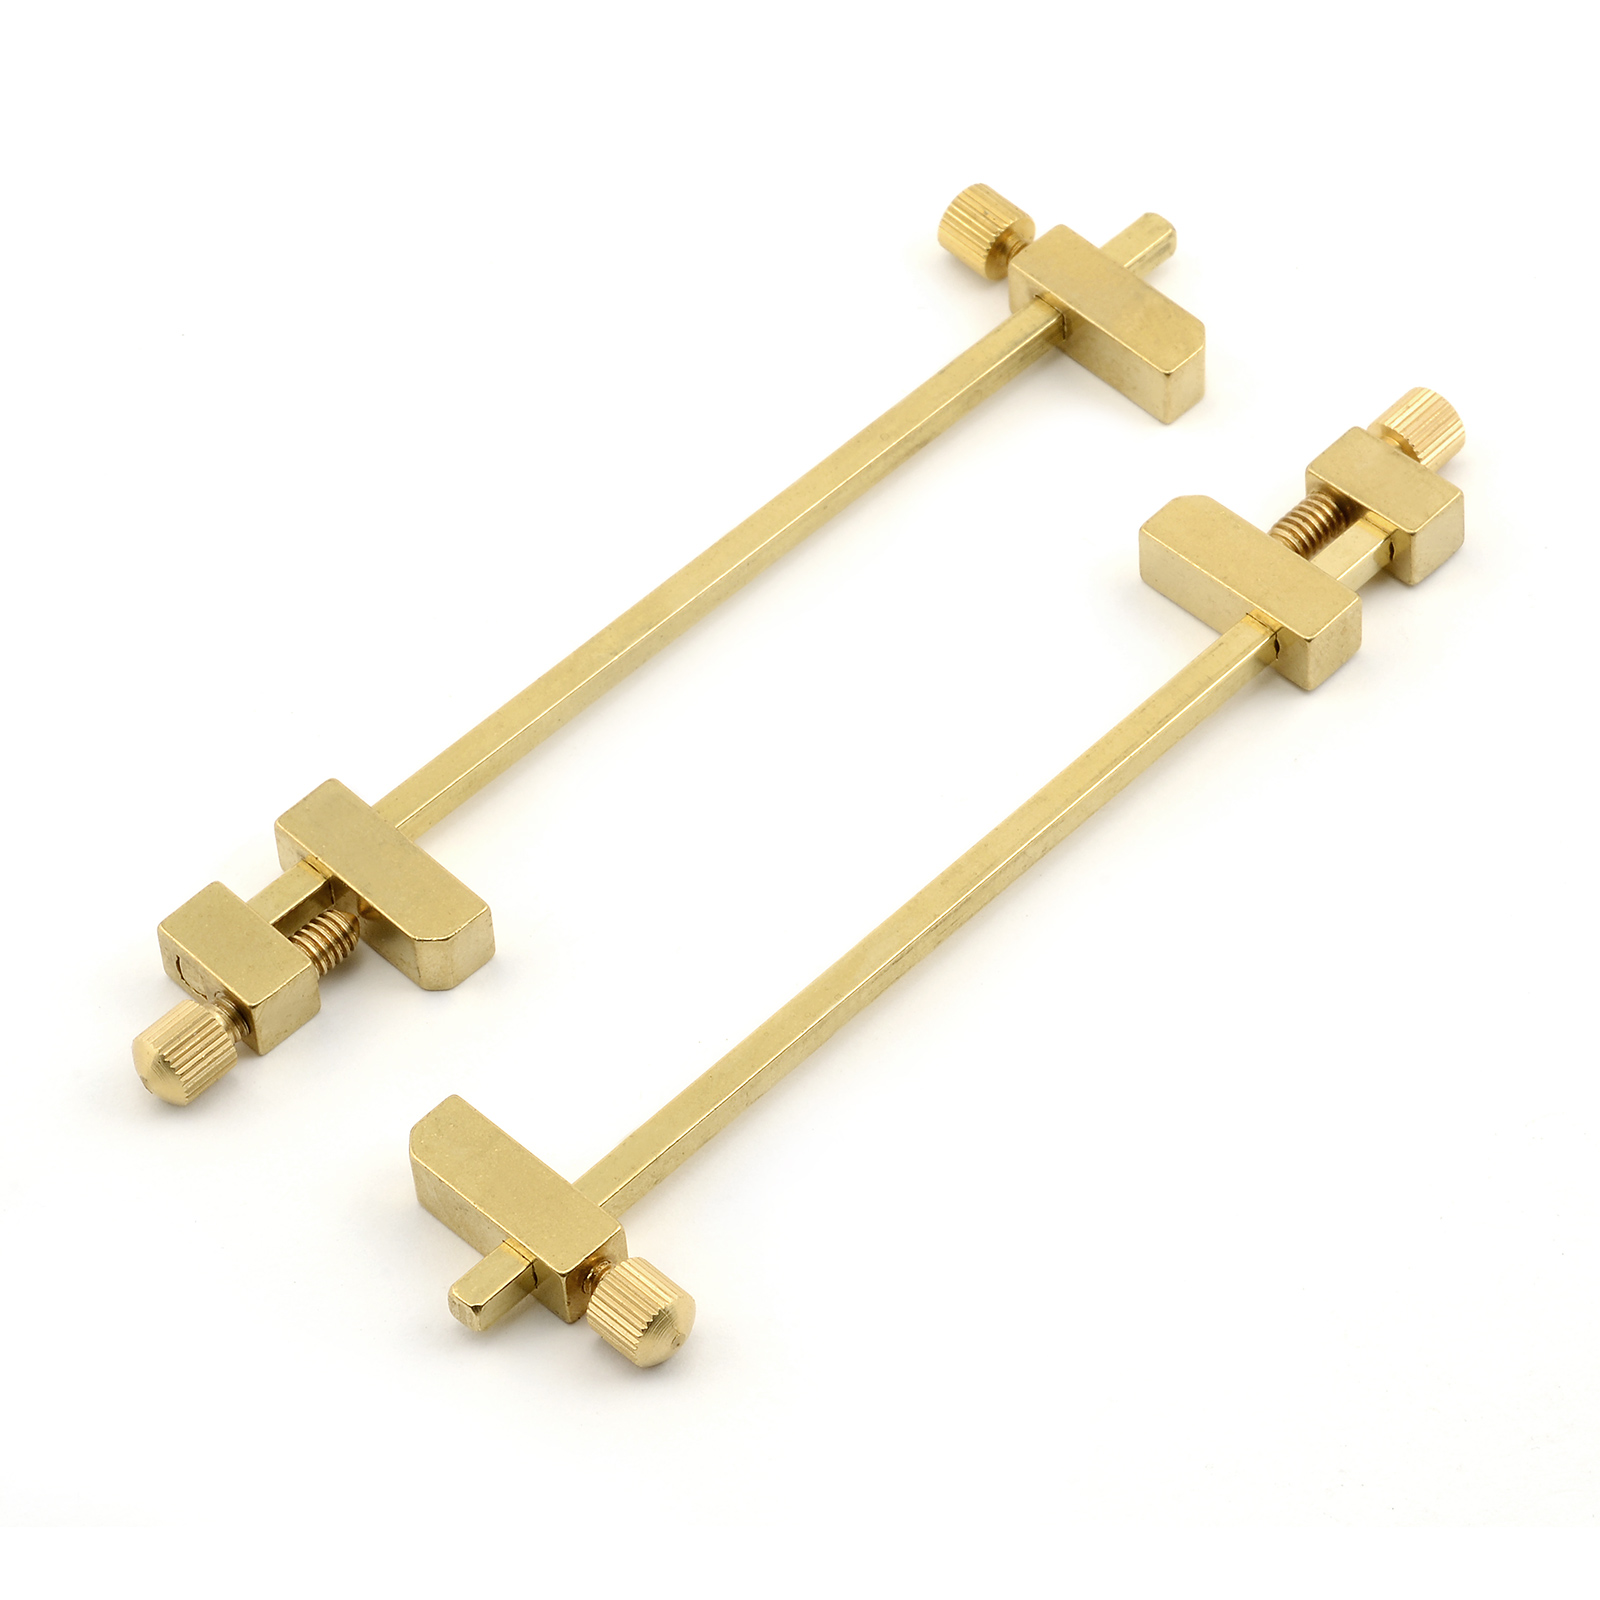 Solid brass miniature bar clamps inches long set of